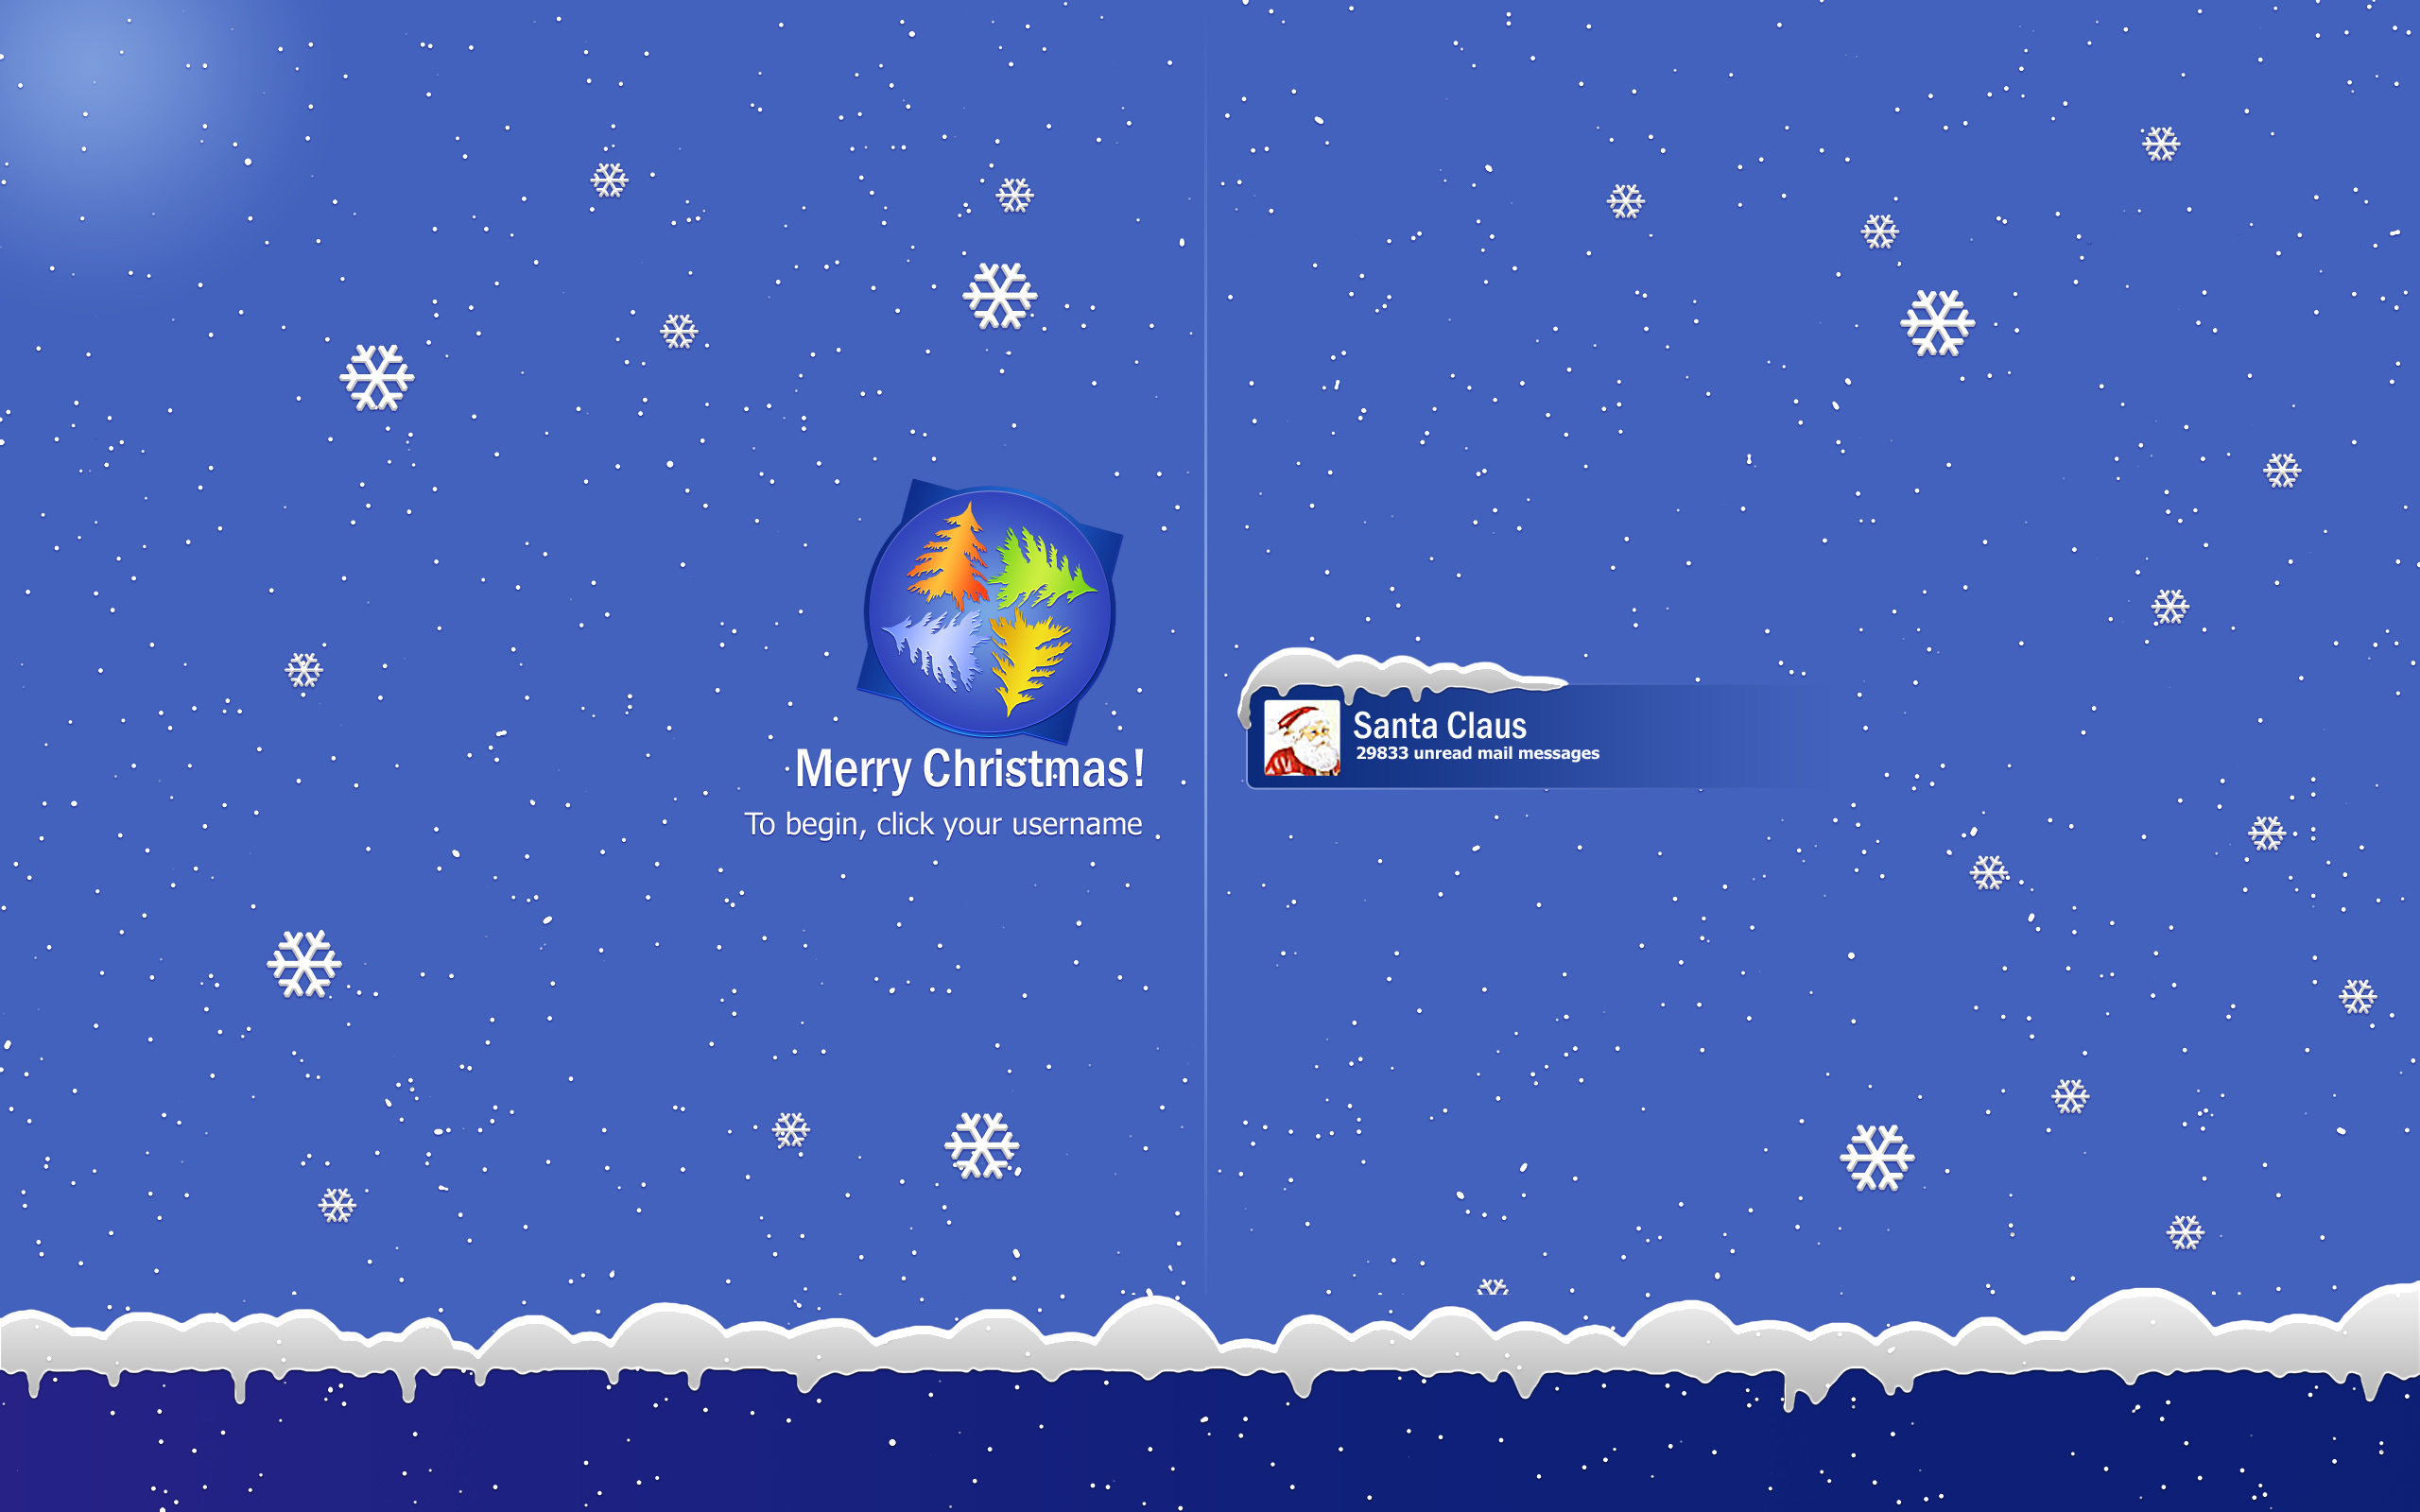 Merry Christmas Desktop Login Screen Wallpaper